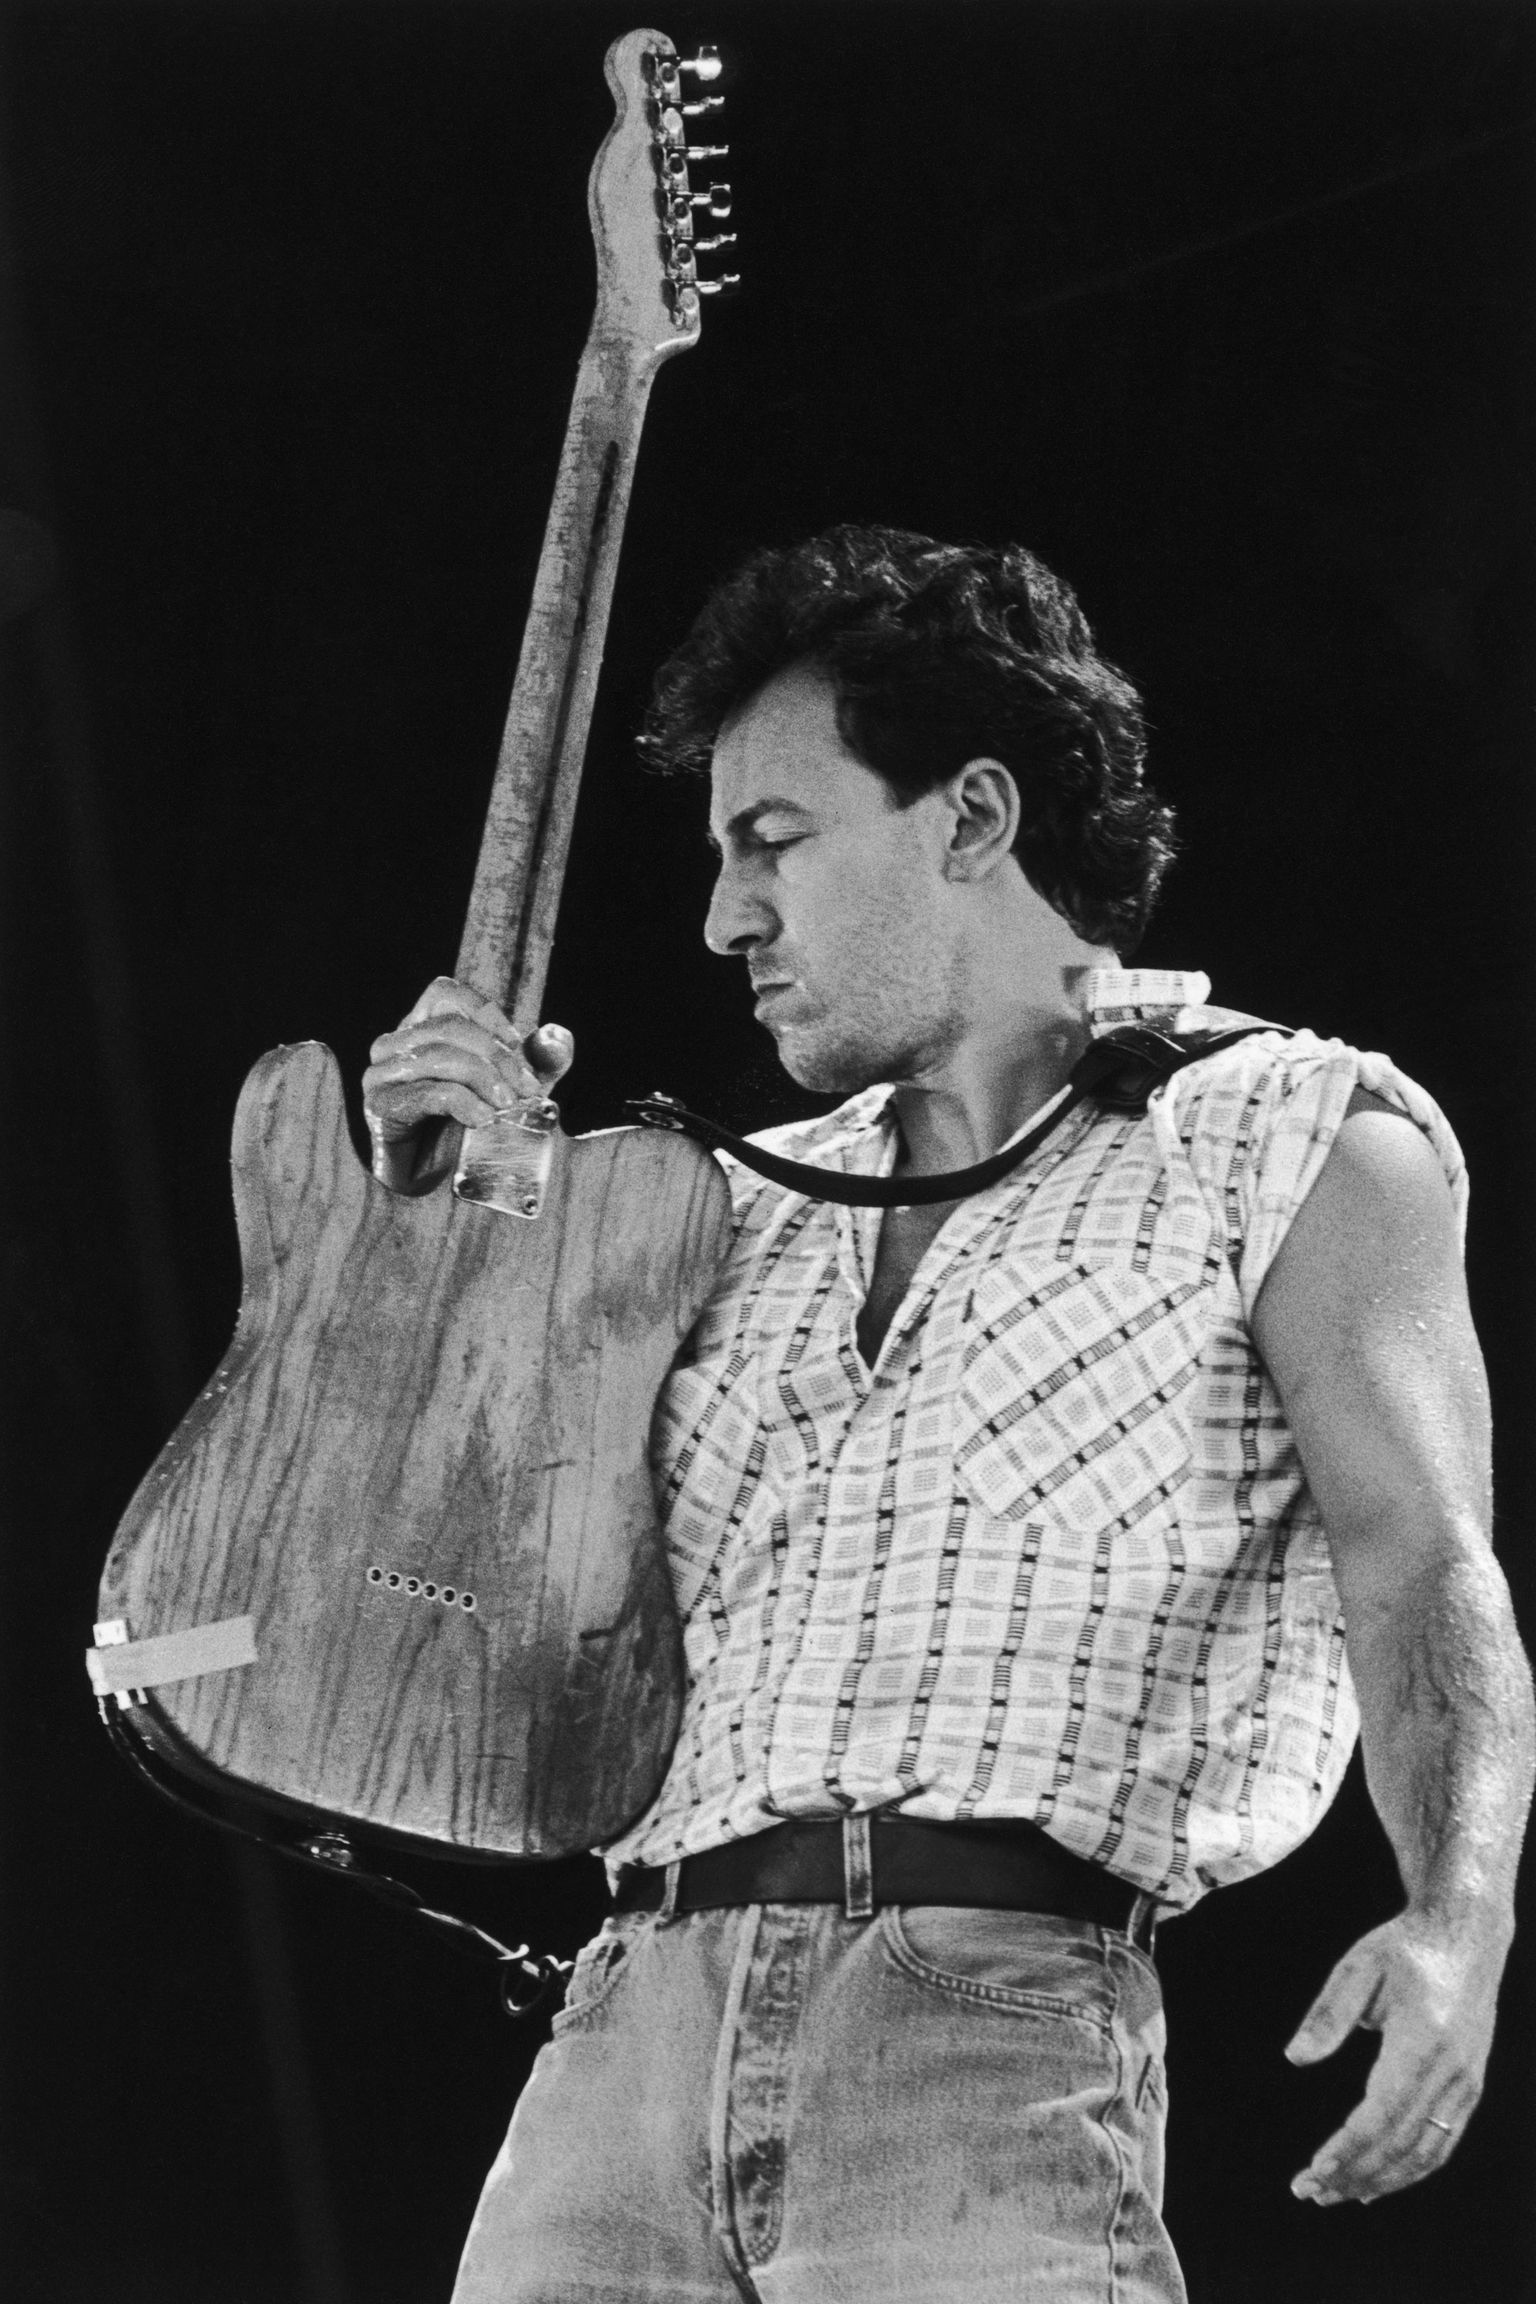 Pin on Bruce Springsteen